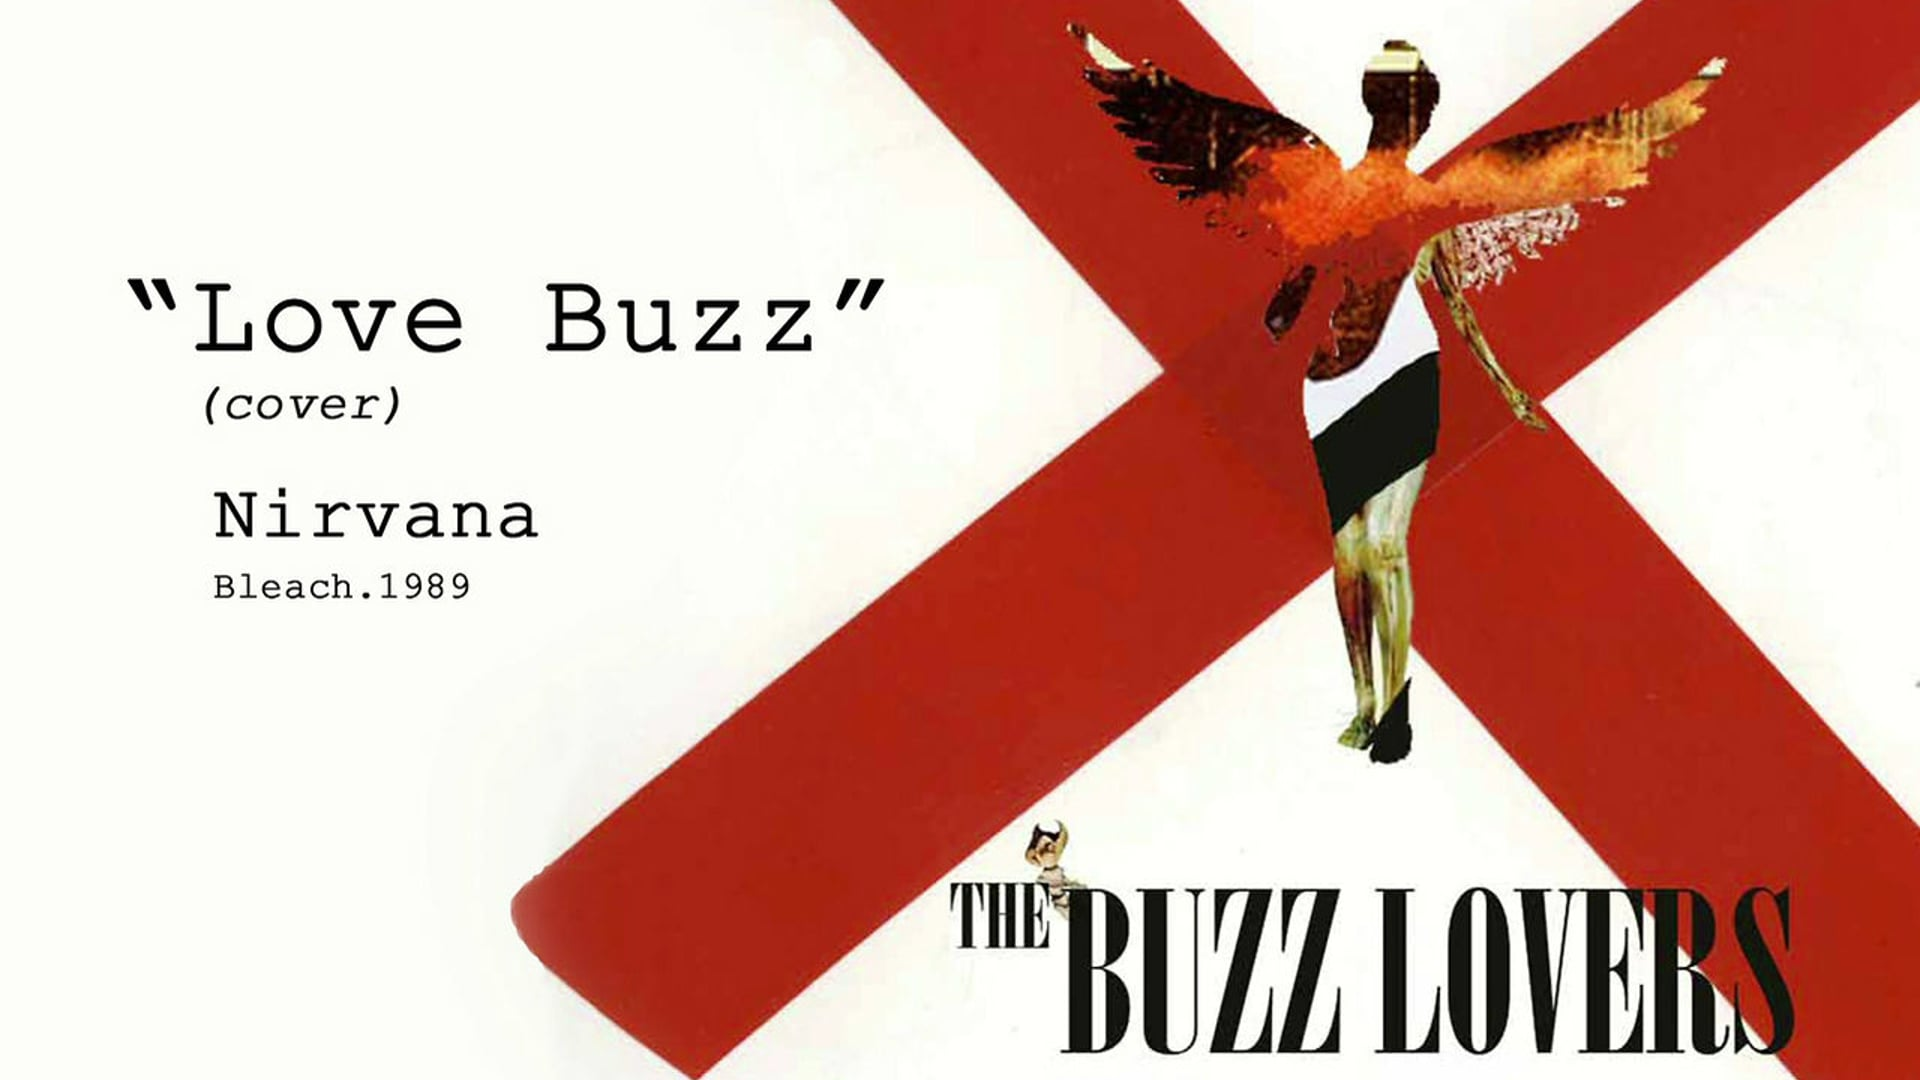 LOVE BUZZ - The Buzz Lovers (Musicvideo-Nirvana cover)